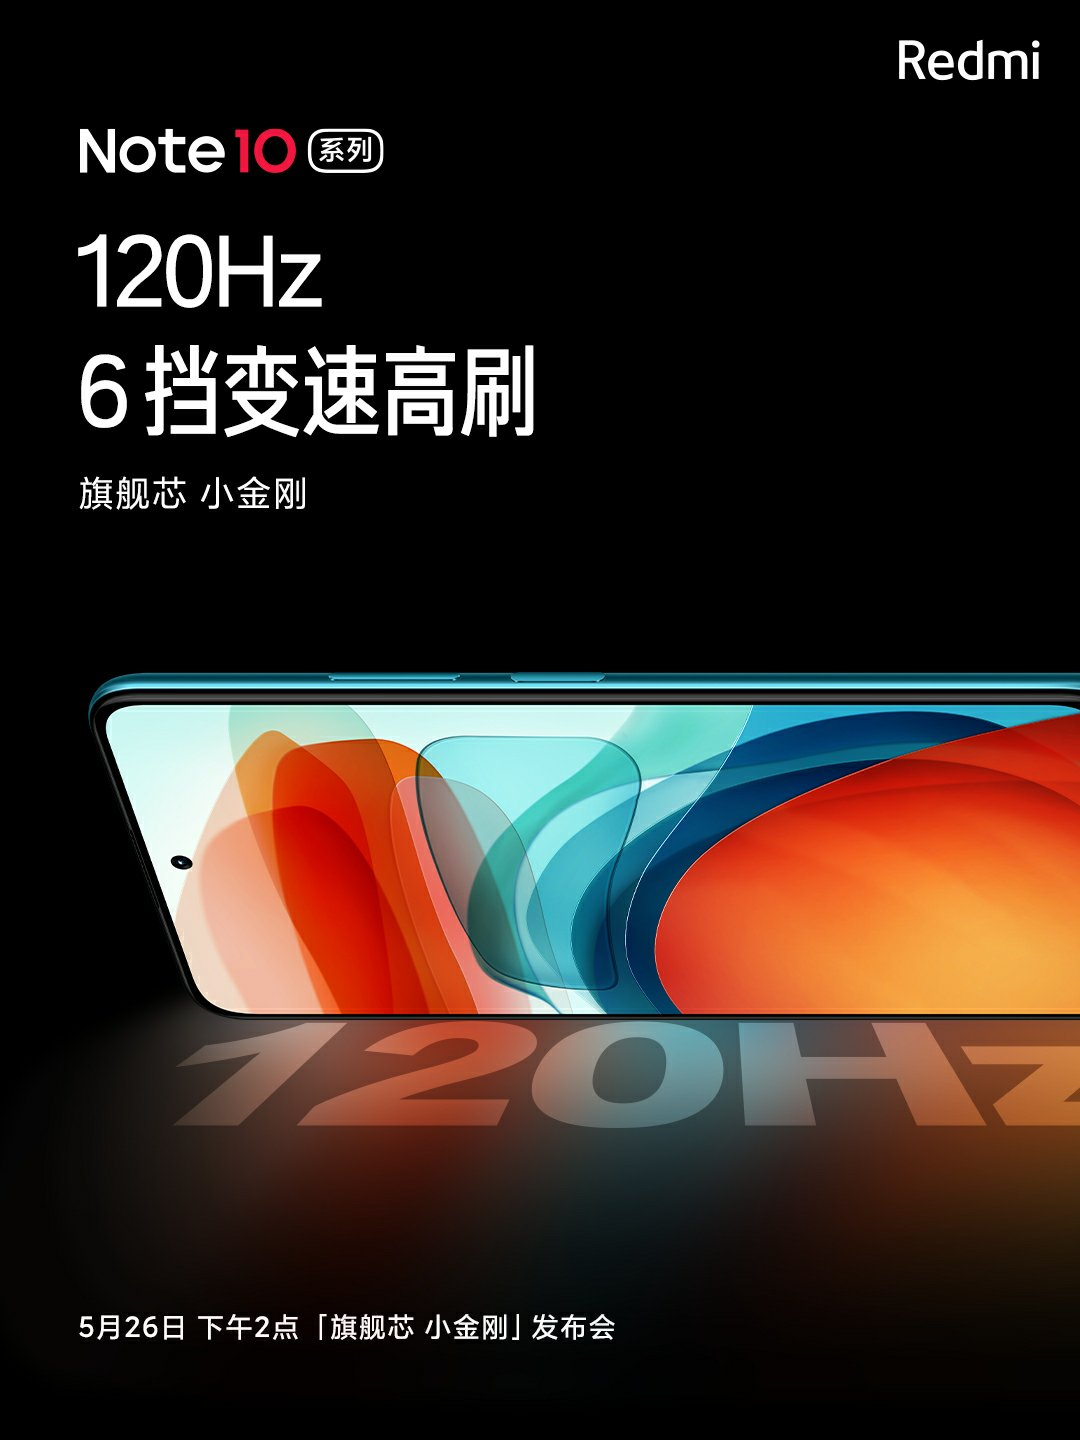 Redmi Note10 Series Display Features 120Hz Refresh rate